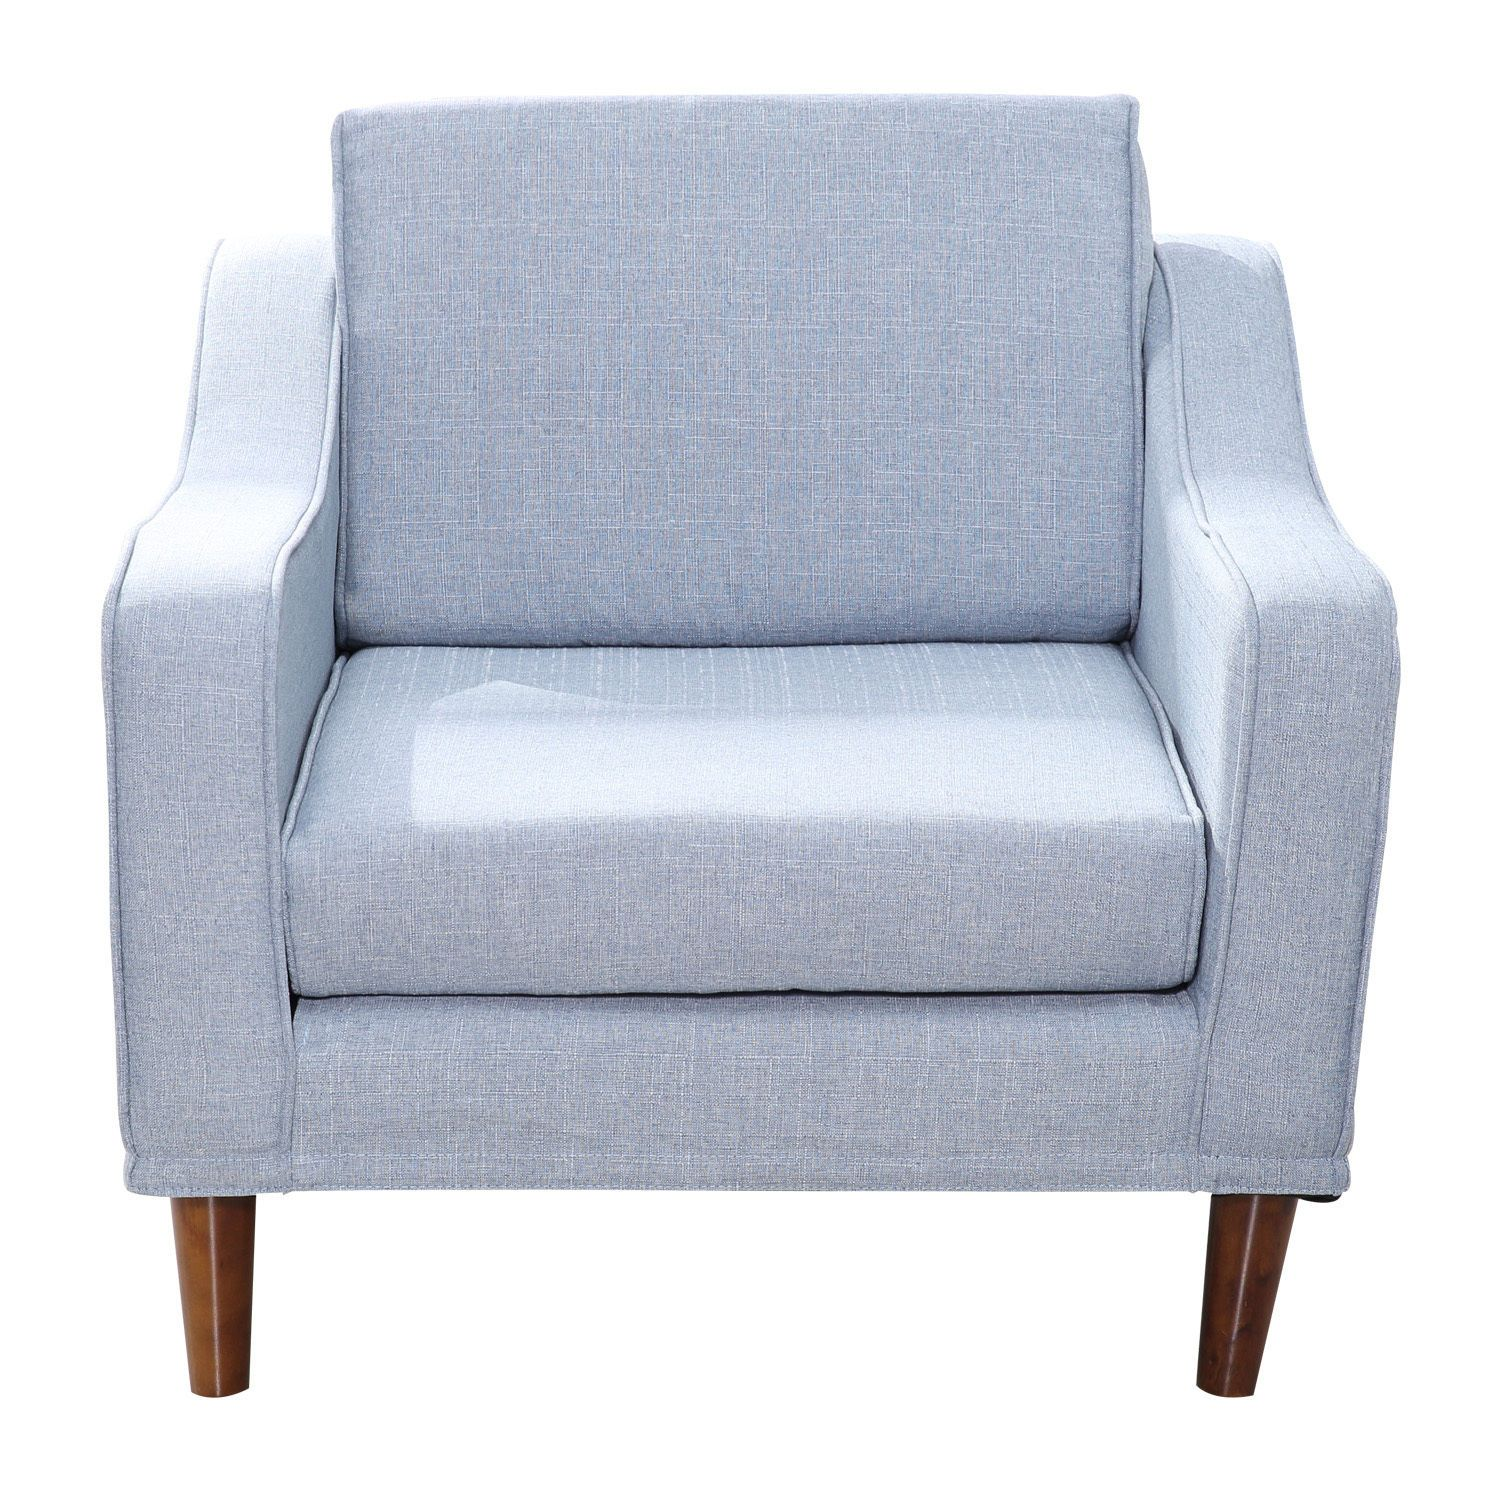 Sofa Arm Chair Single Seat Wood Chaise Linen Couch Cover